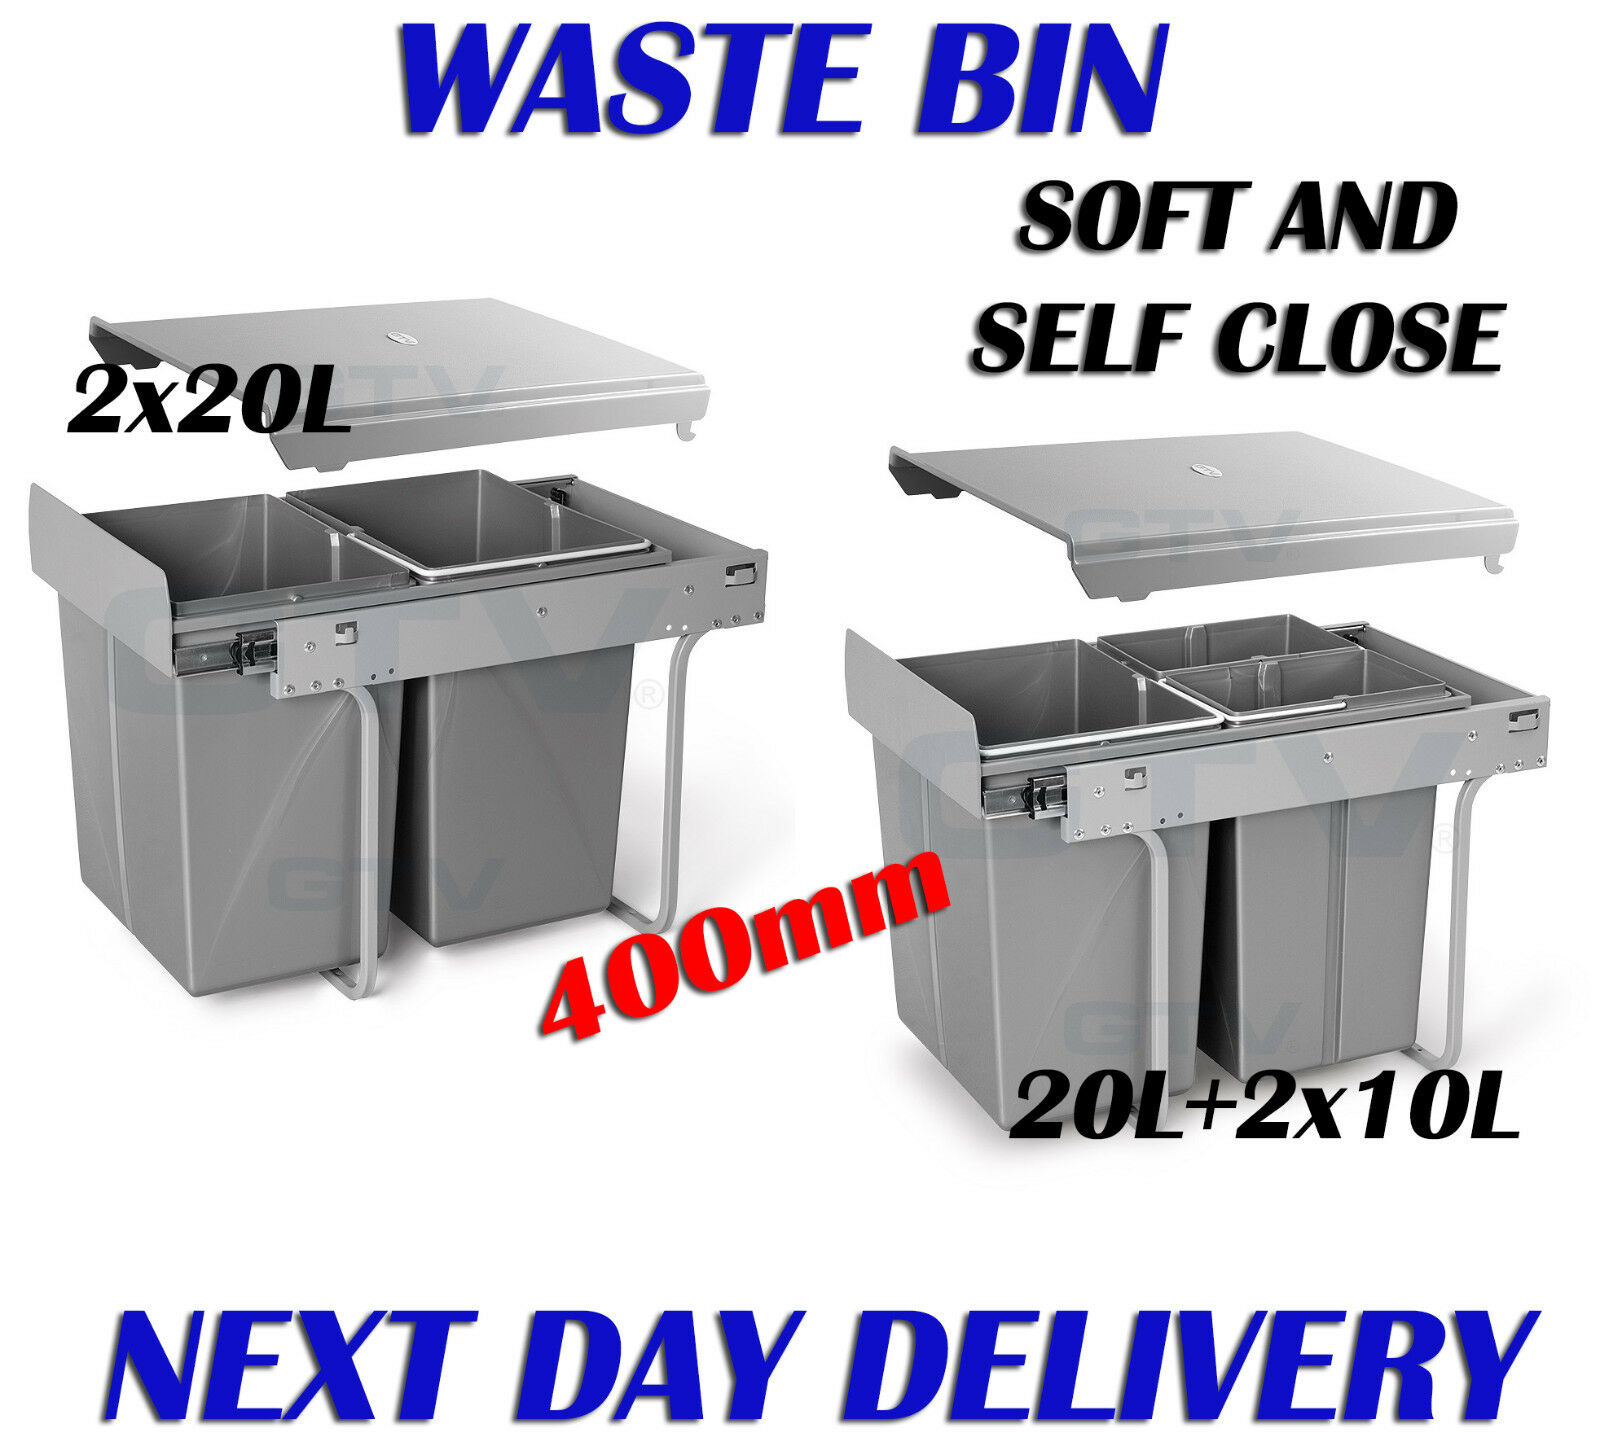 CARGO PULL OUT RECYCLE BIN KITCHEN HINGED  DOOR  BIN SOFT AND SELF CLOSE 400mm